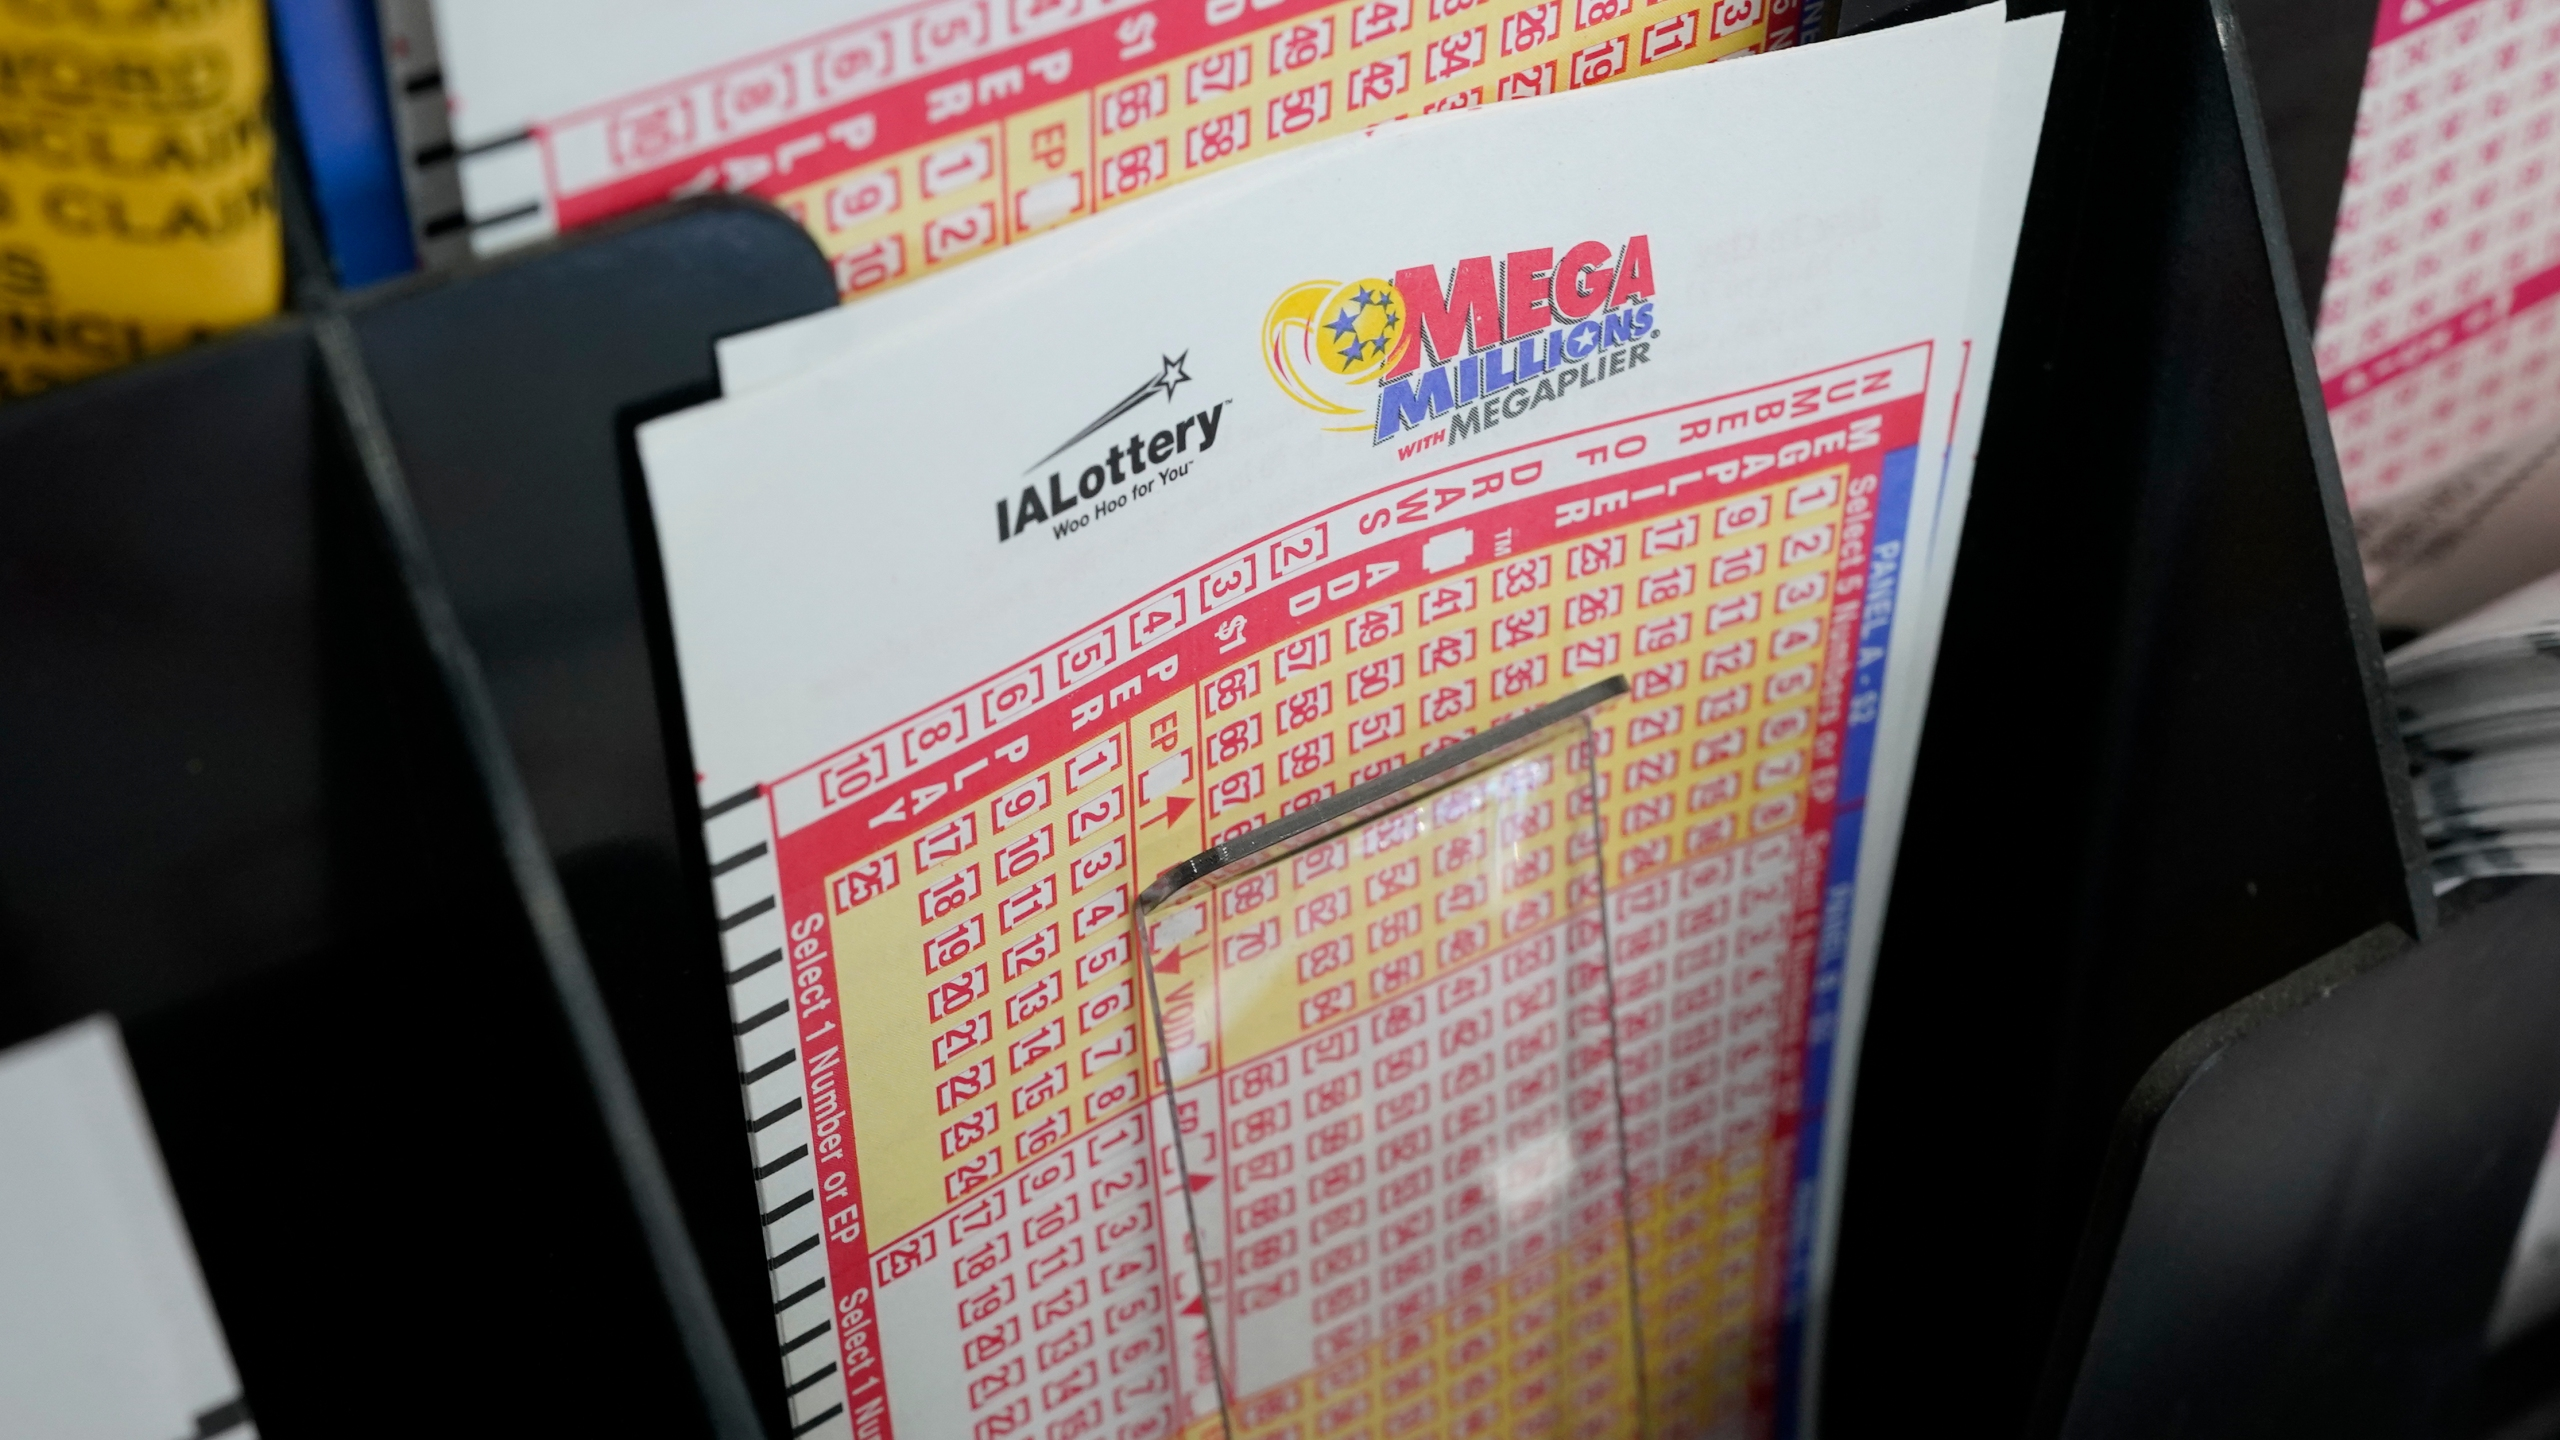 Blank forms for the Mega Millions lottery sit in a bin at a local grocery store, Tuesday, Jan. 12, 2021, in Des Moines, Iowa. (AP Photo/Charlie Neibergall)